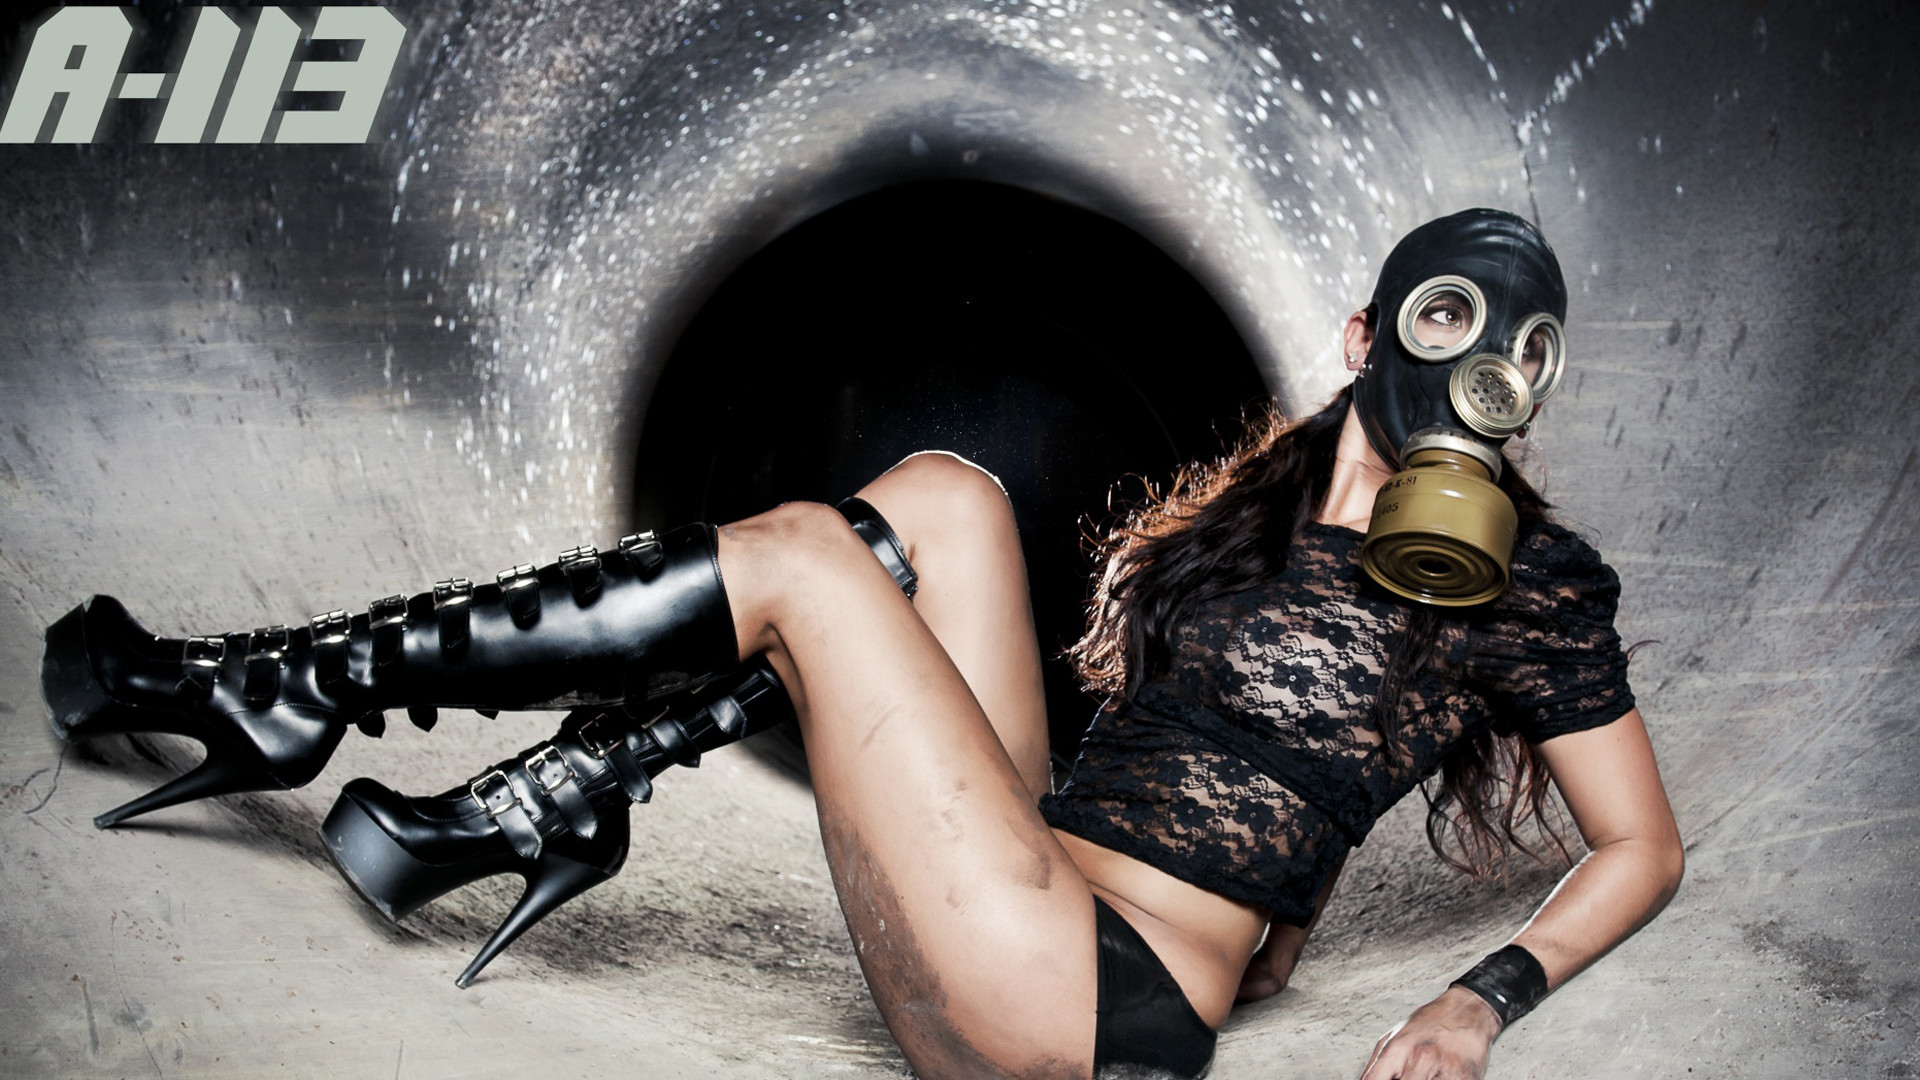 1920x1080 Gasmask Hottie 2 Wallpaper 1920X1080.jpg 1,920×1,080 pixels